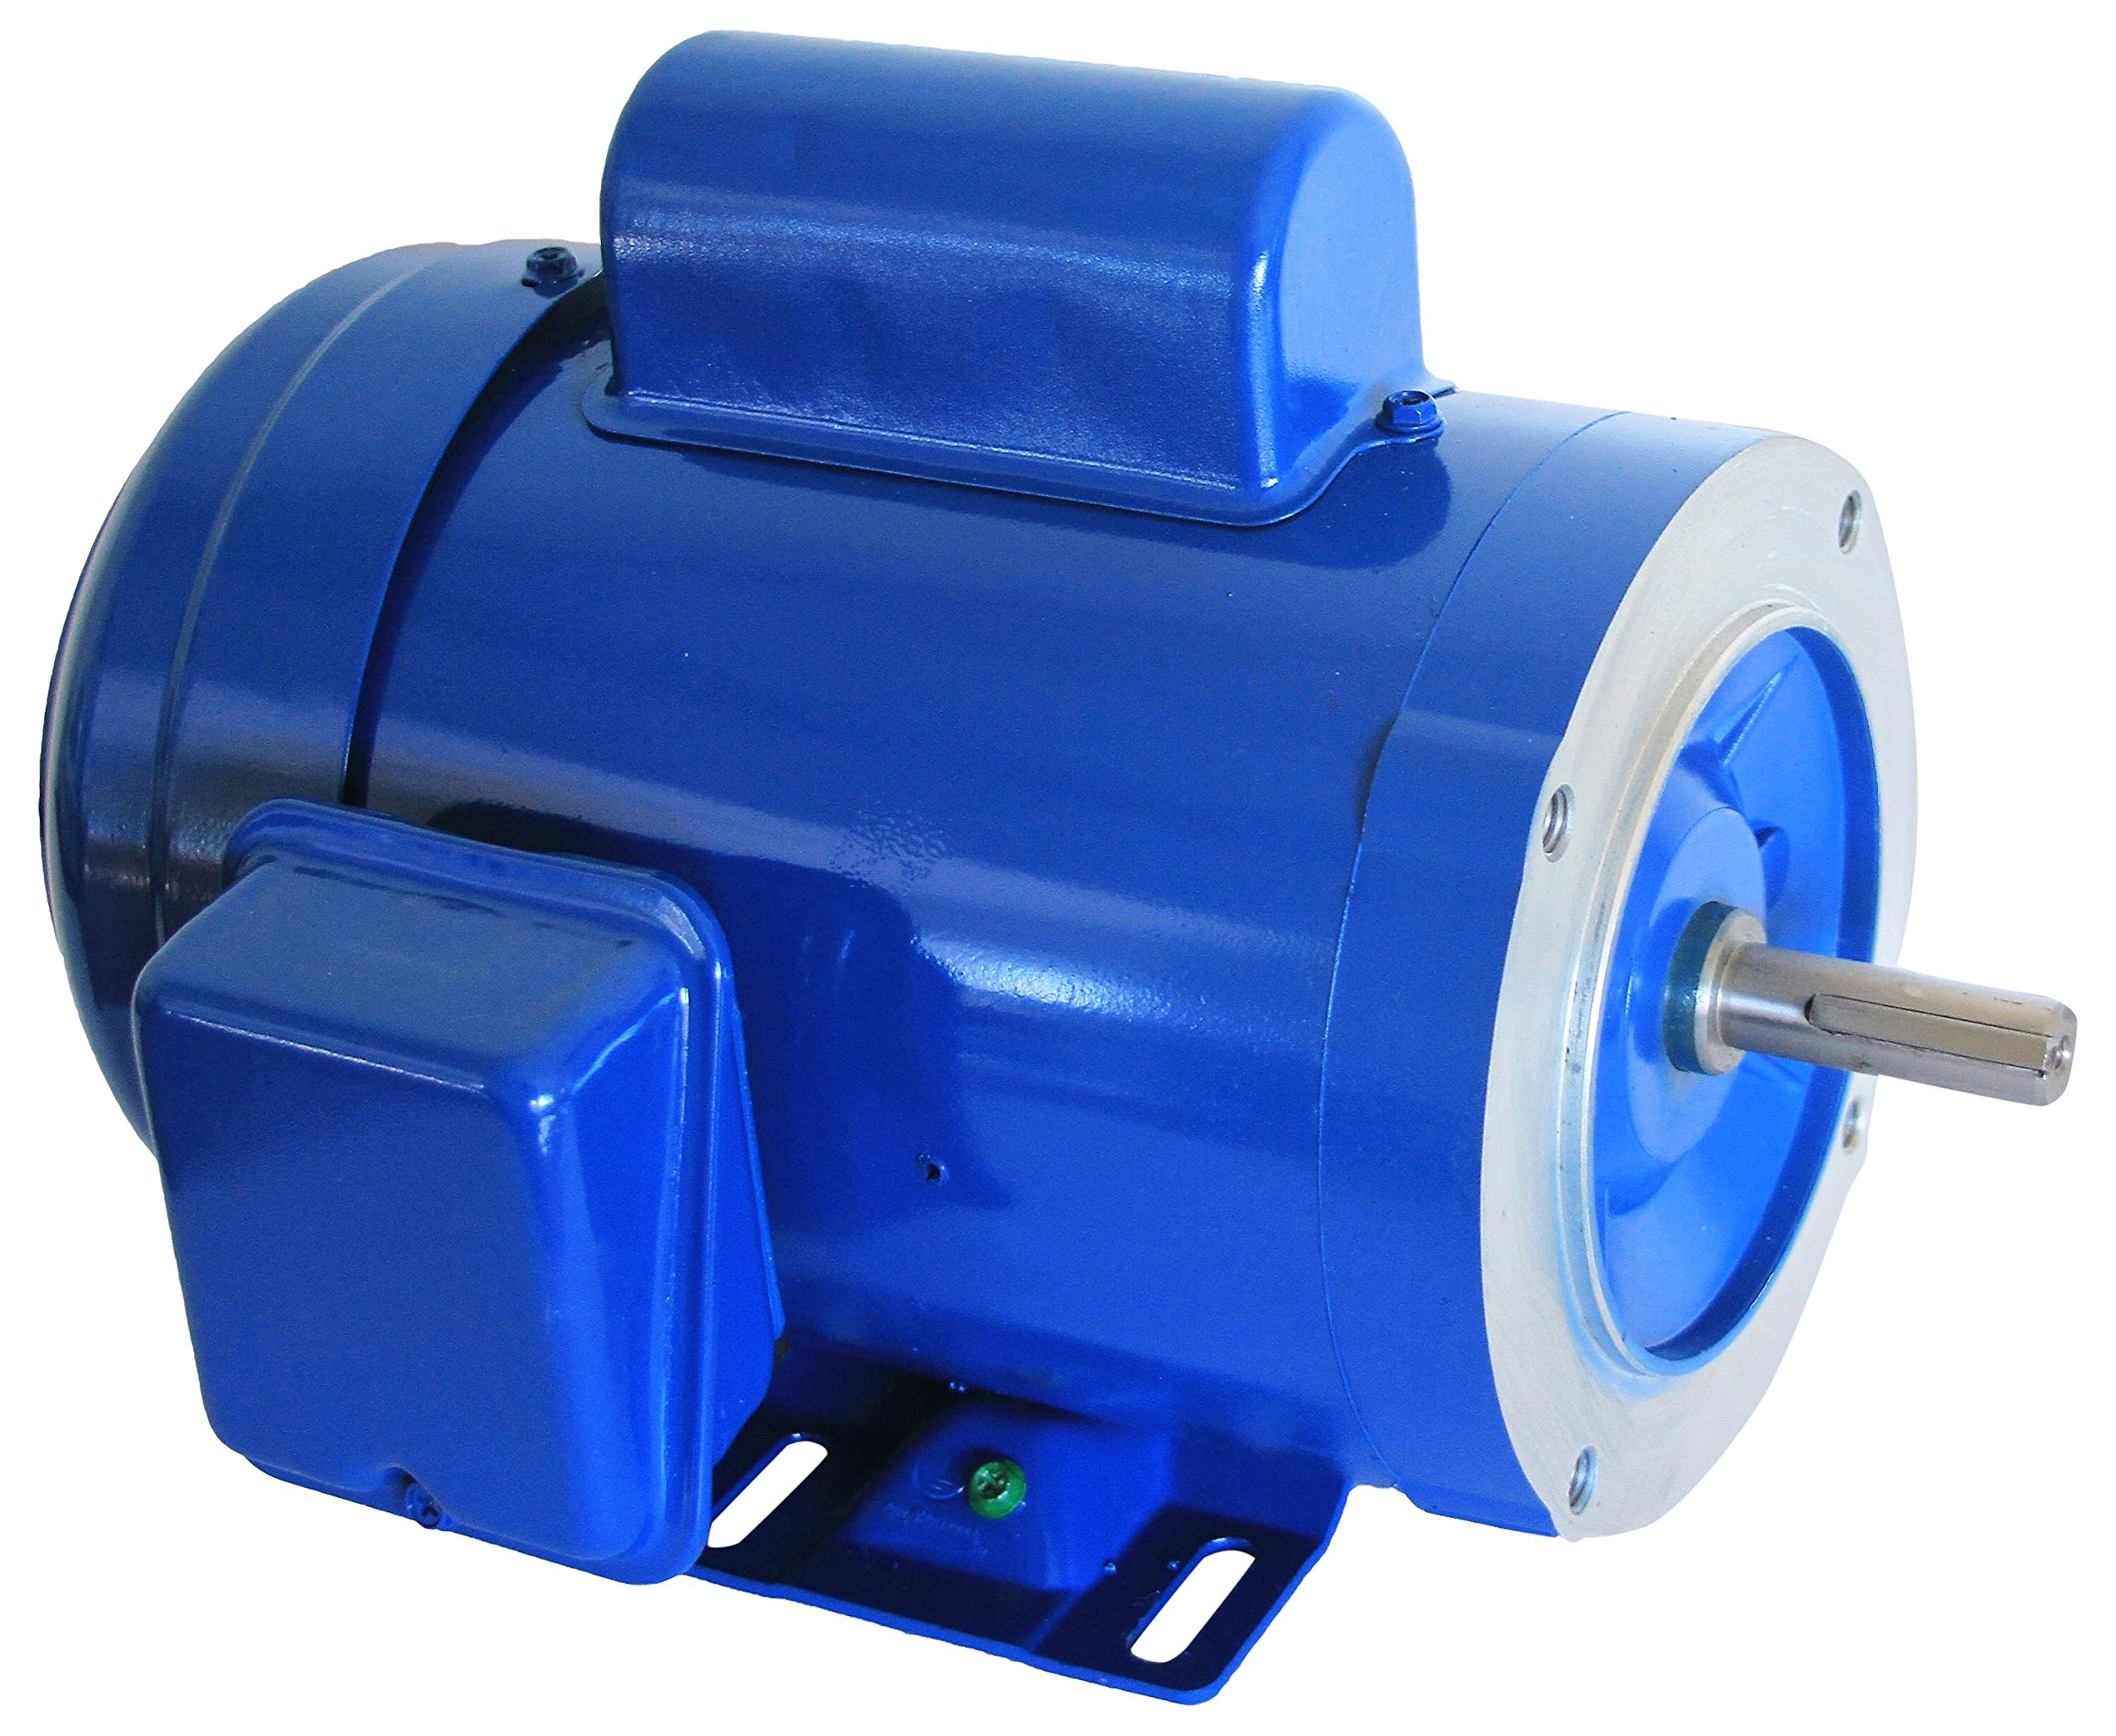 Hallmark Industries MA0510A AC Motor, 1 hp, 1725 RPM, 1PH/60 Hz, 115/208-230 VAC, 56C/TEFC, Cap Start with Foot, SF 1.15, Class F Insulation (Pack of 1) by Hallmark Industries (Image #1)